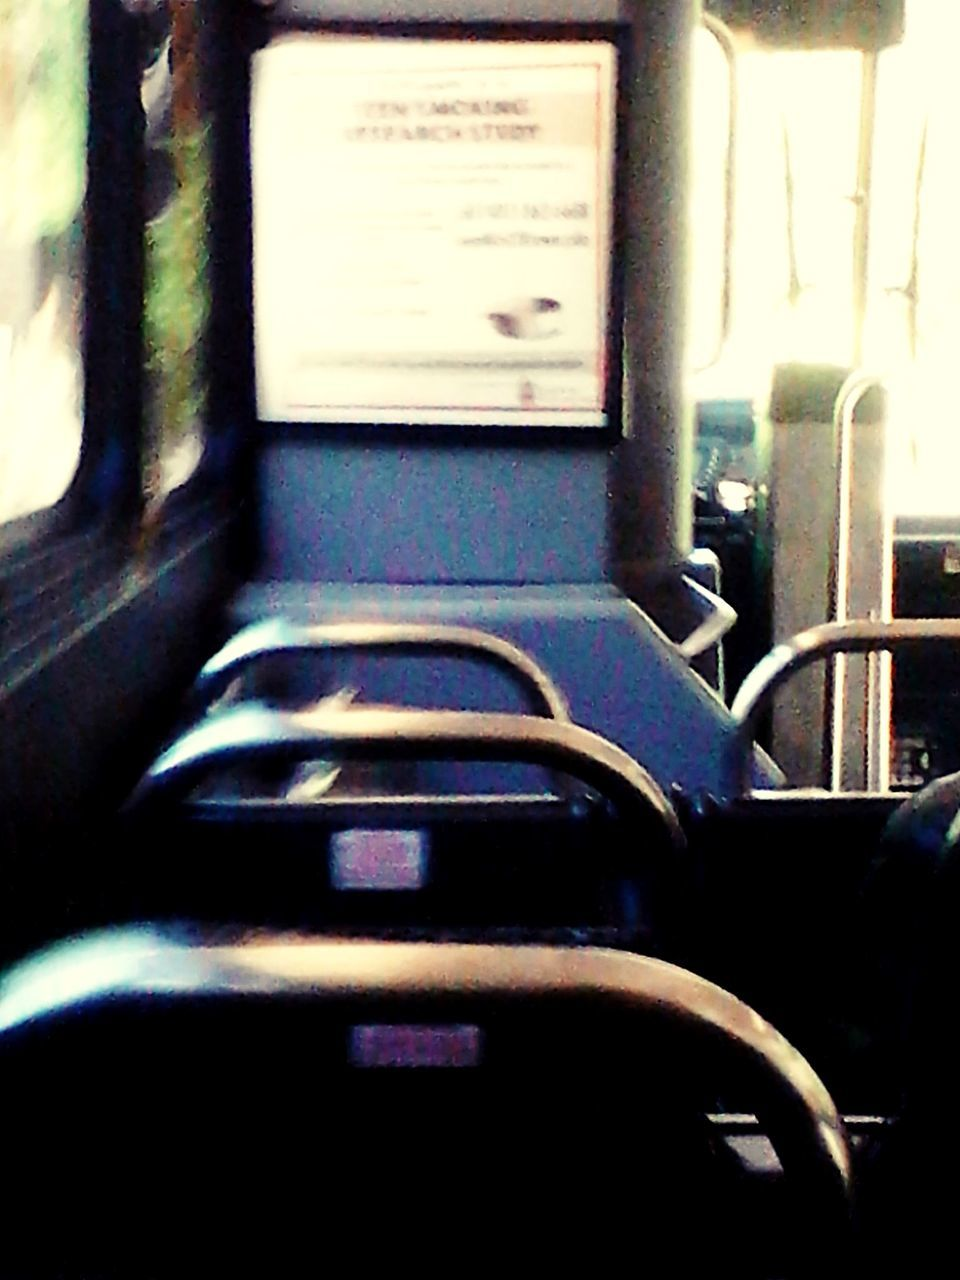 seat, chair, transportation, indoors, no people, close-up, day, vehicle seat